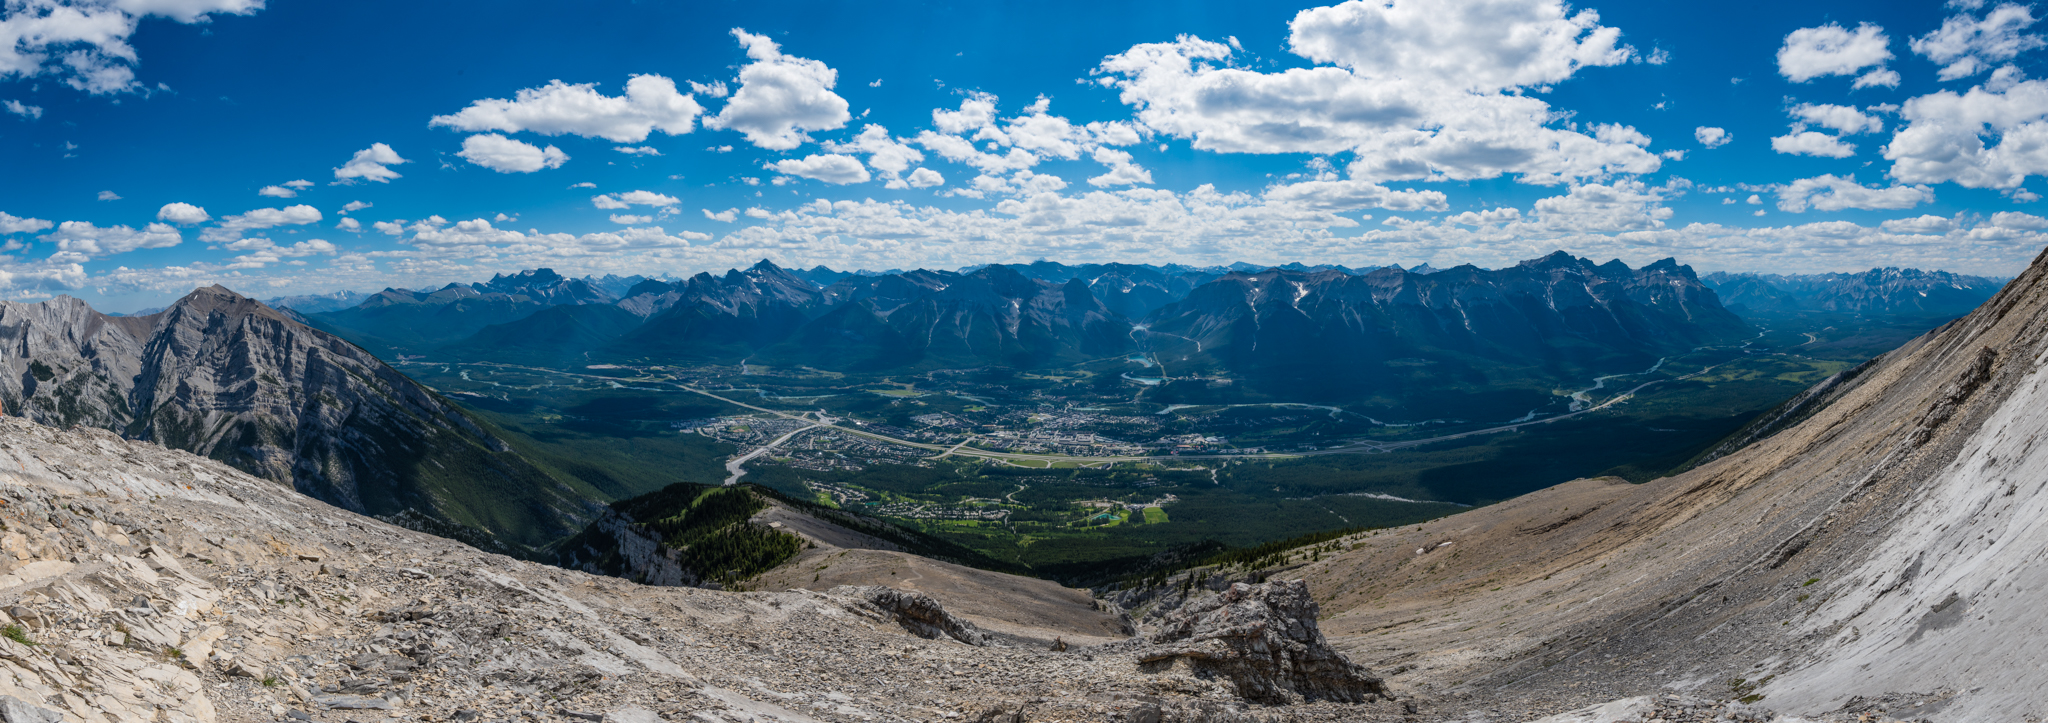 2017 07 03 Mount Lady Macdonald-15.jpg